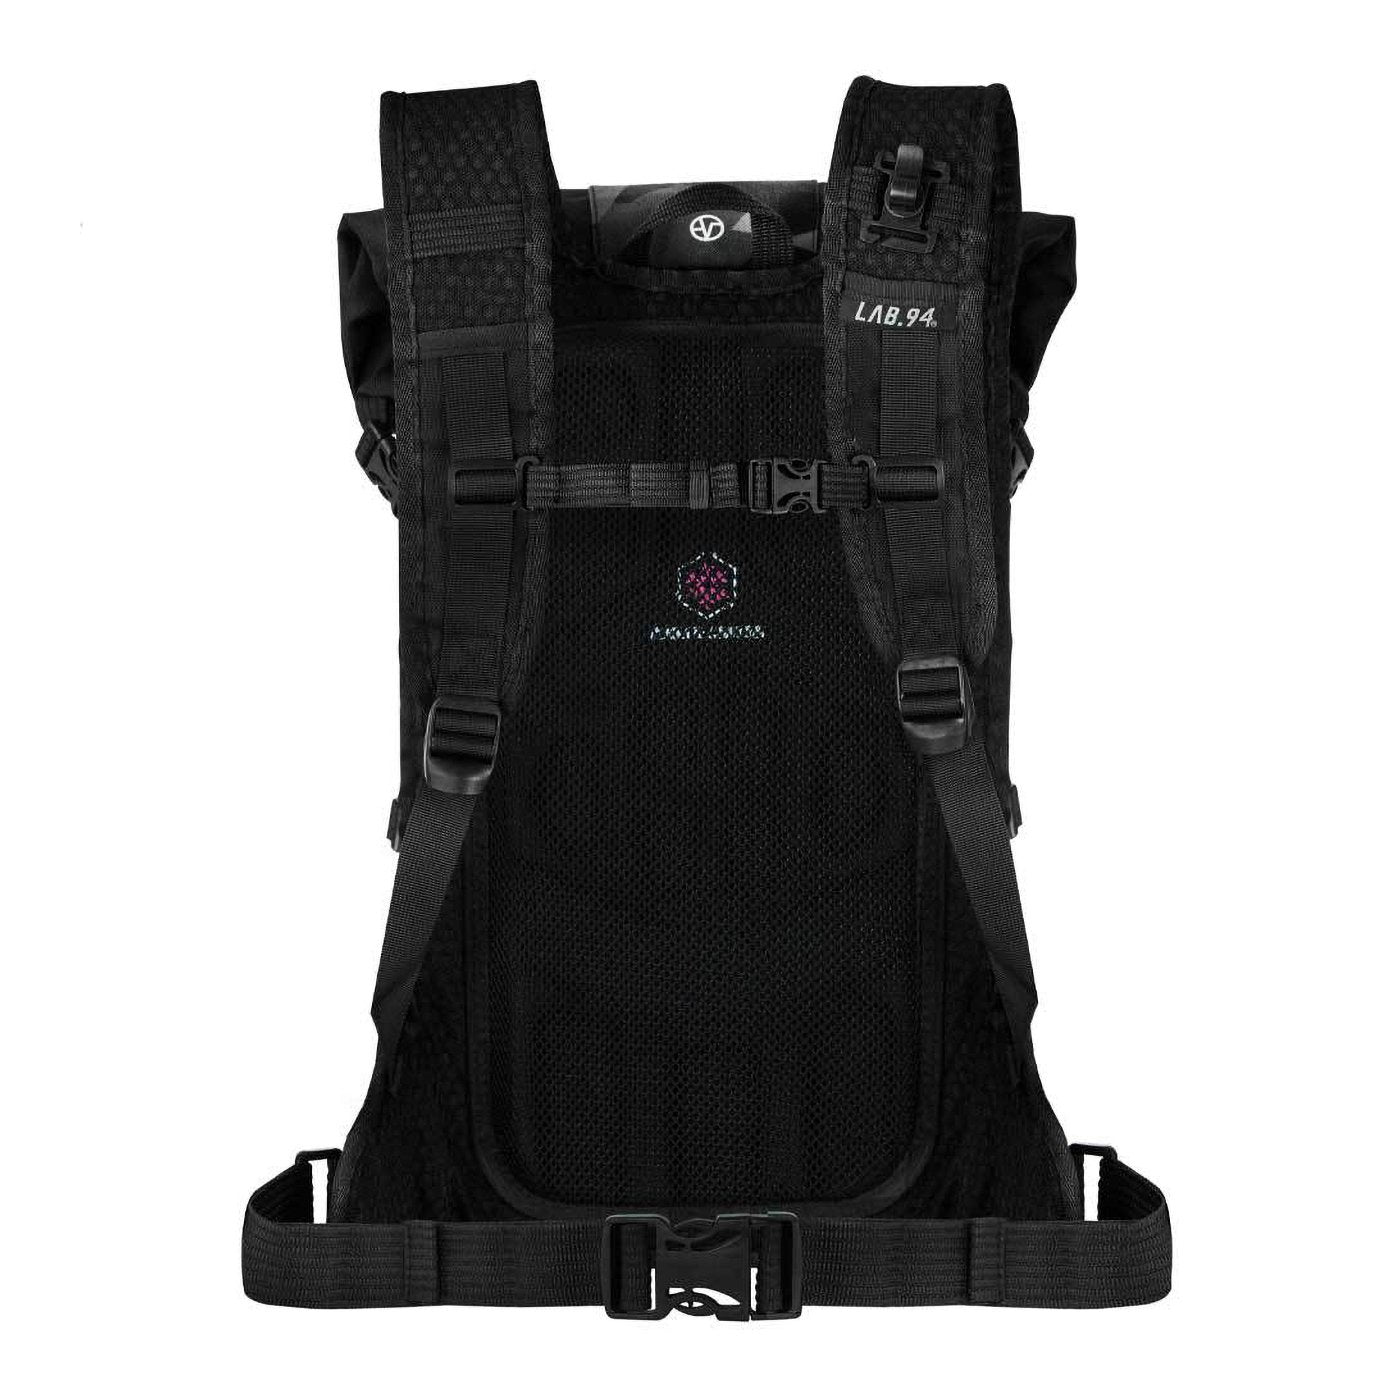 LAB.94 The Ride Pack